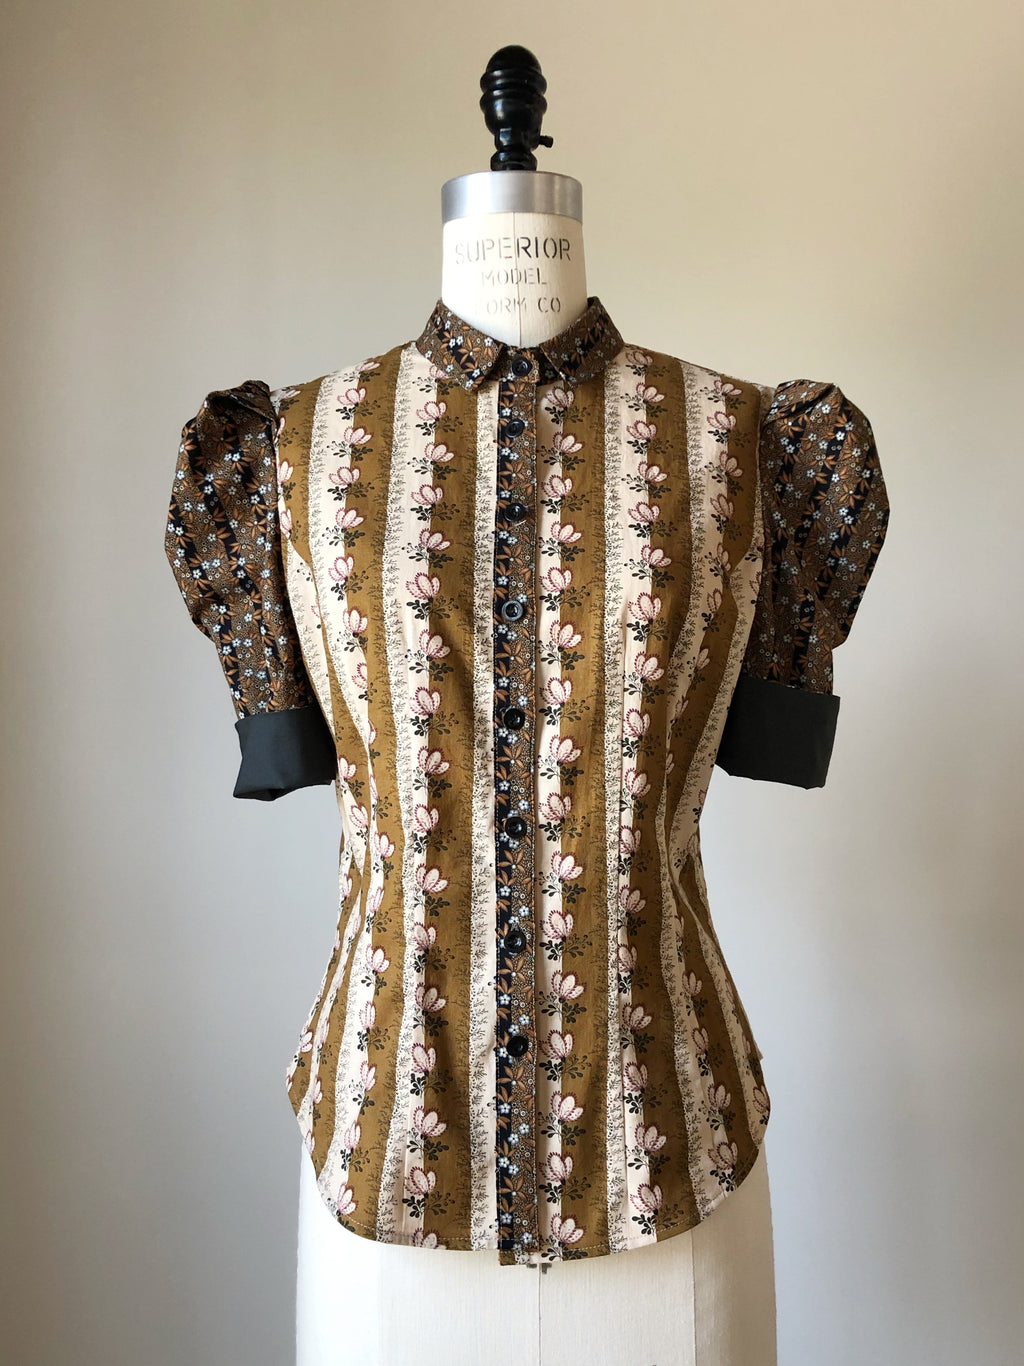 Lillian work shirt in 19th century reproduction prints #2